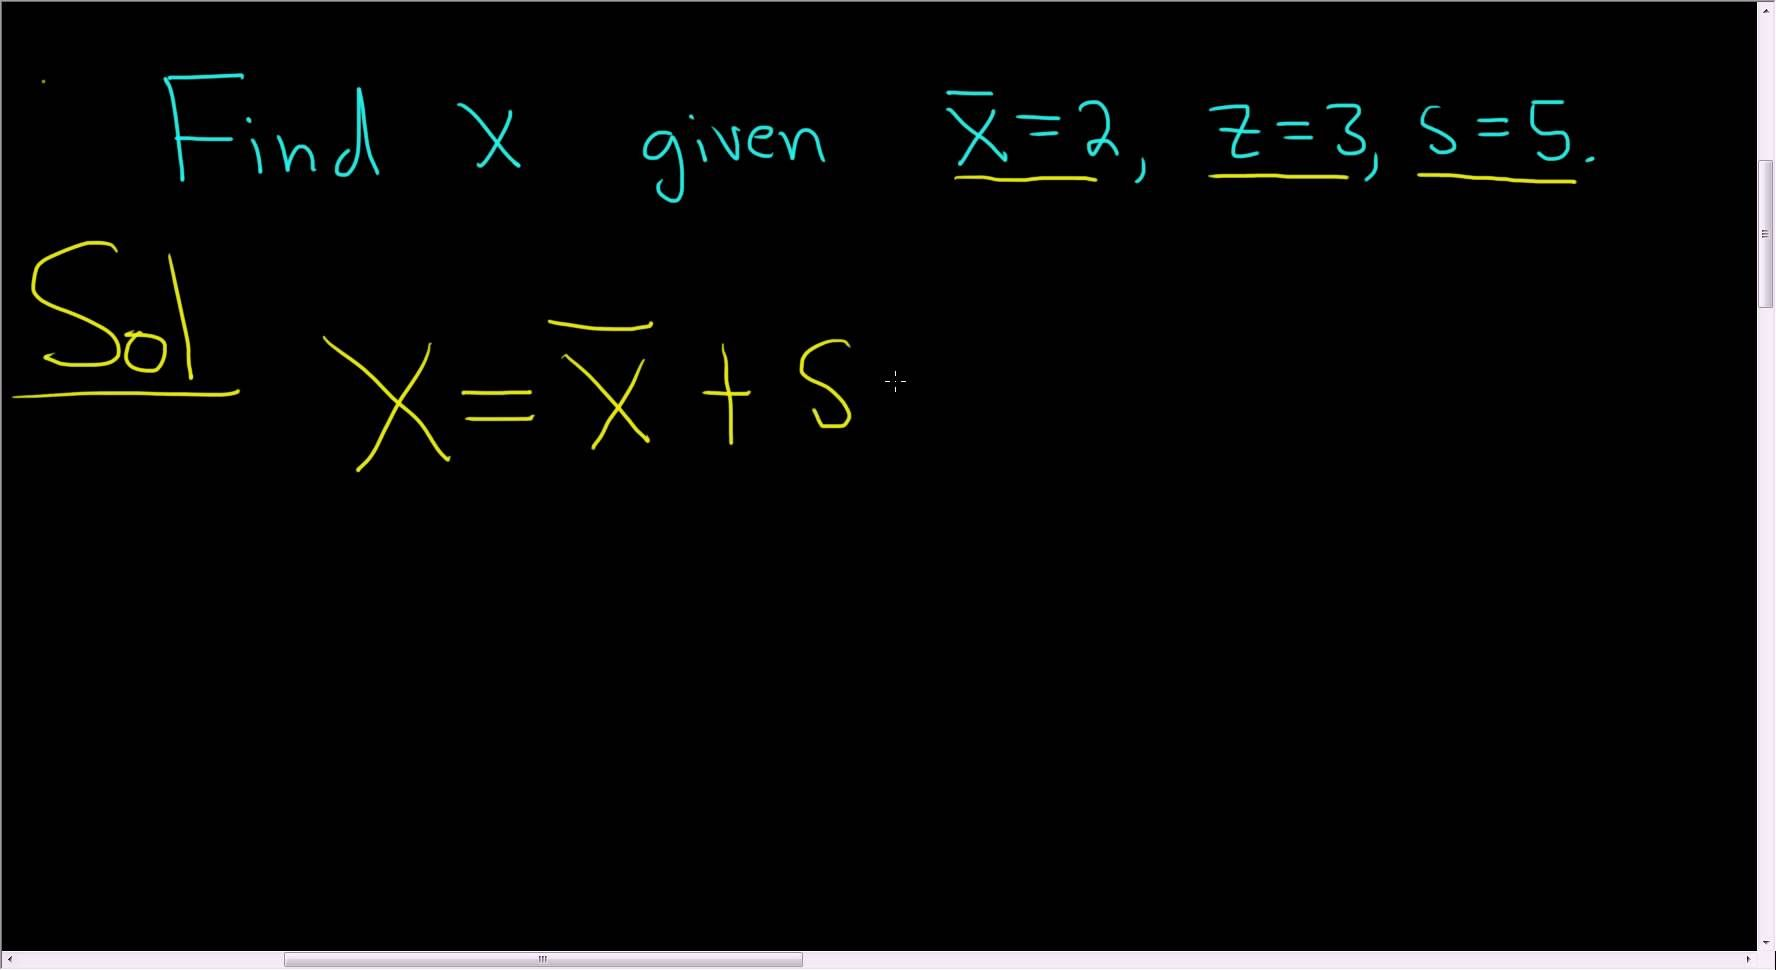 Find x given the z-score, sample mean, and sample standard deviation